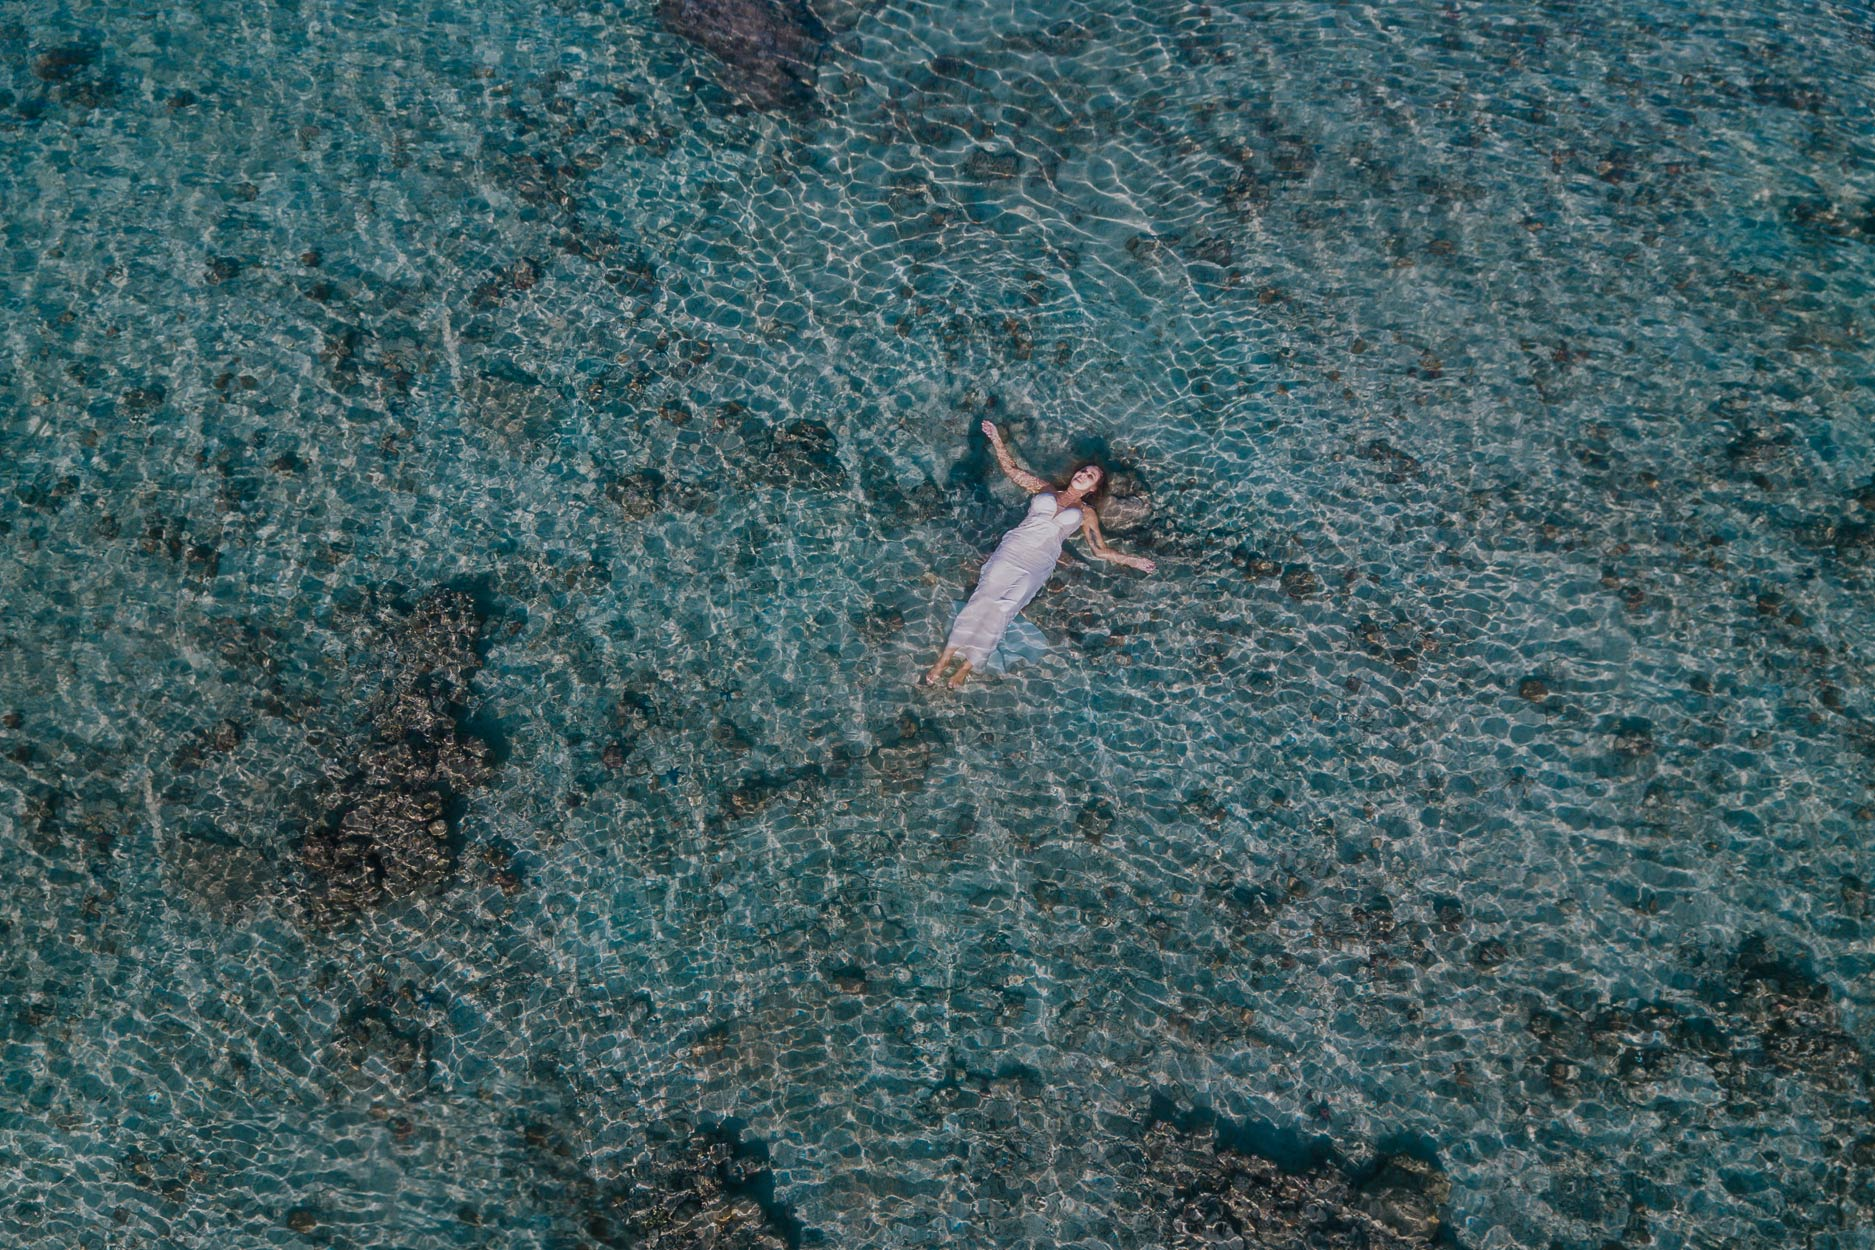 Best Fiji & Noosa Drone Destination Wedding Photographer - Sunshine Coast, Queensland, Australian